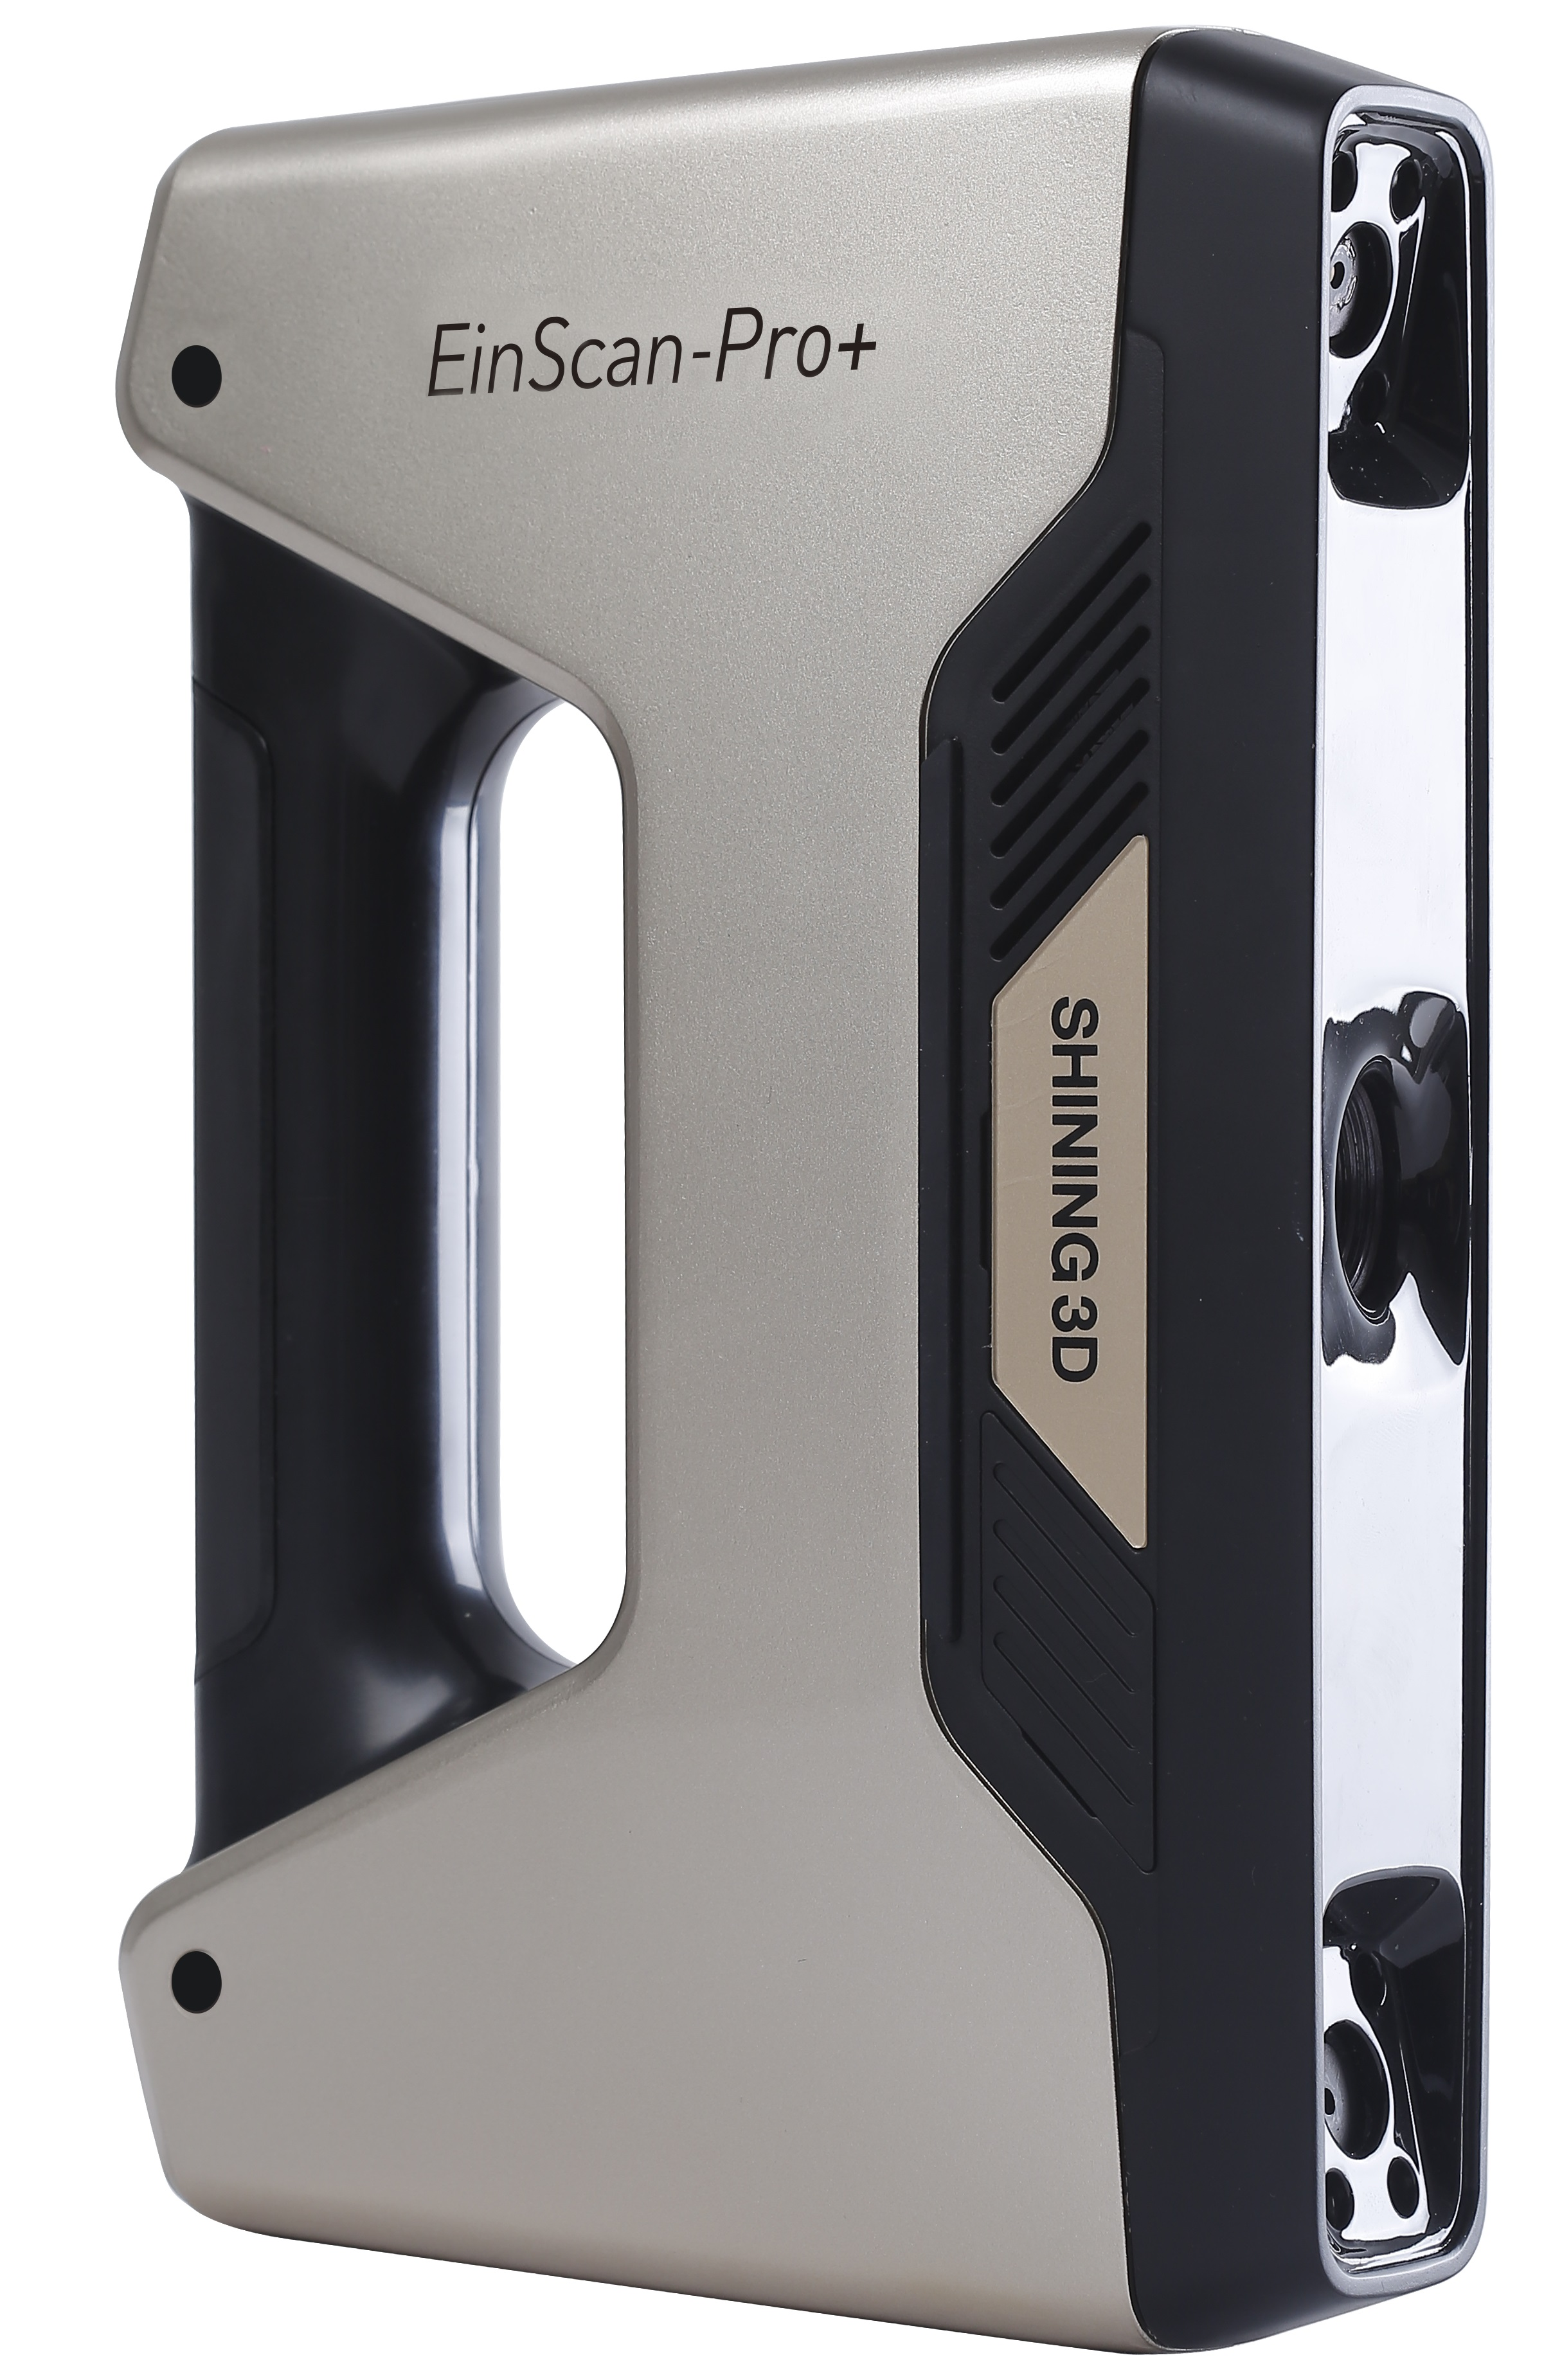 Einscan Pro Plus 3d Scanner With R2 Software Handheld